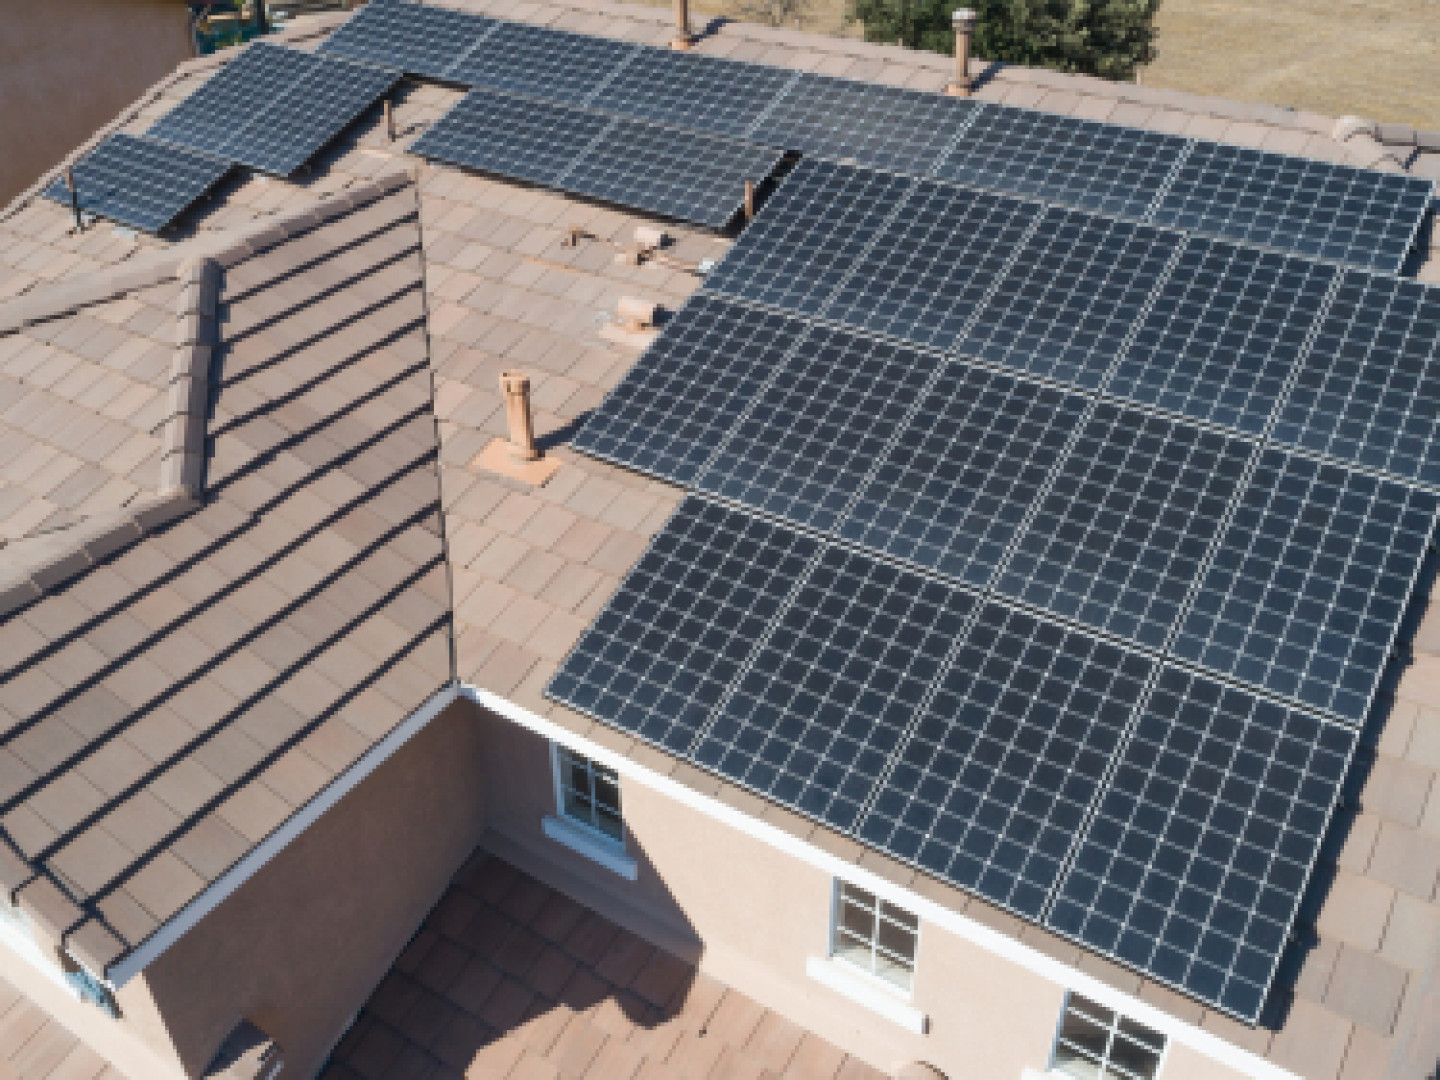 How solar panels can benefit you